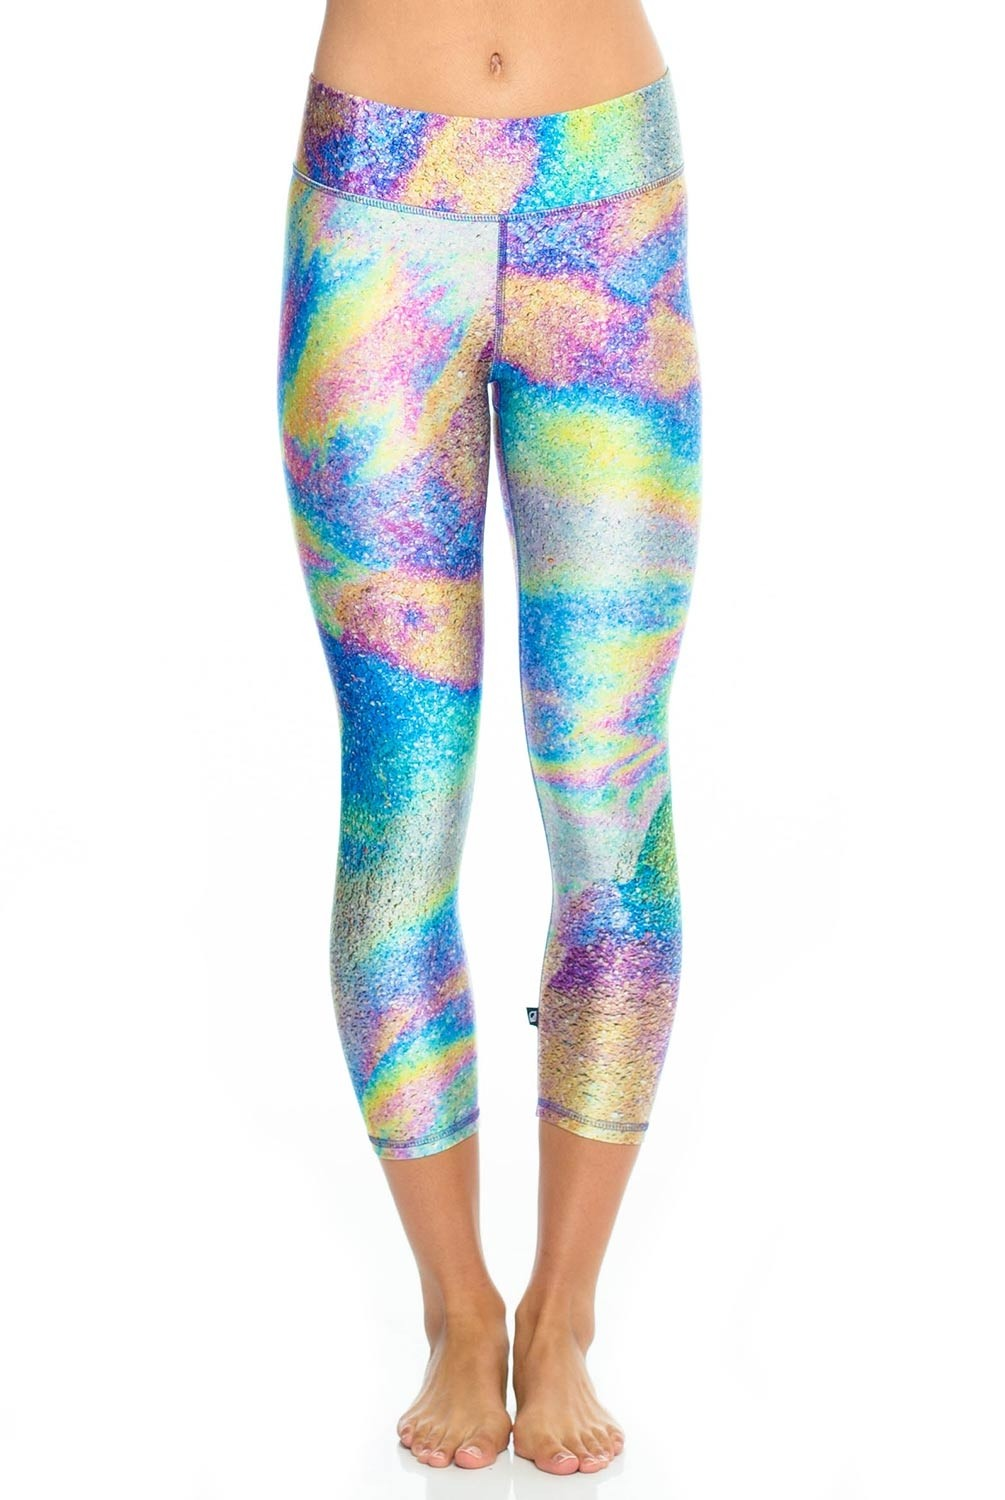 Iridescent pants lowes hot water tank